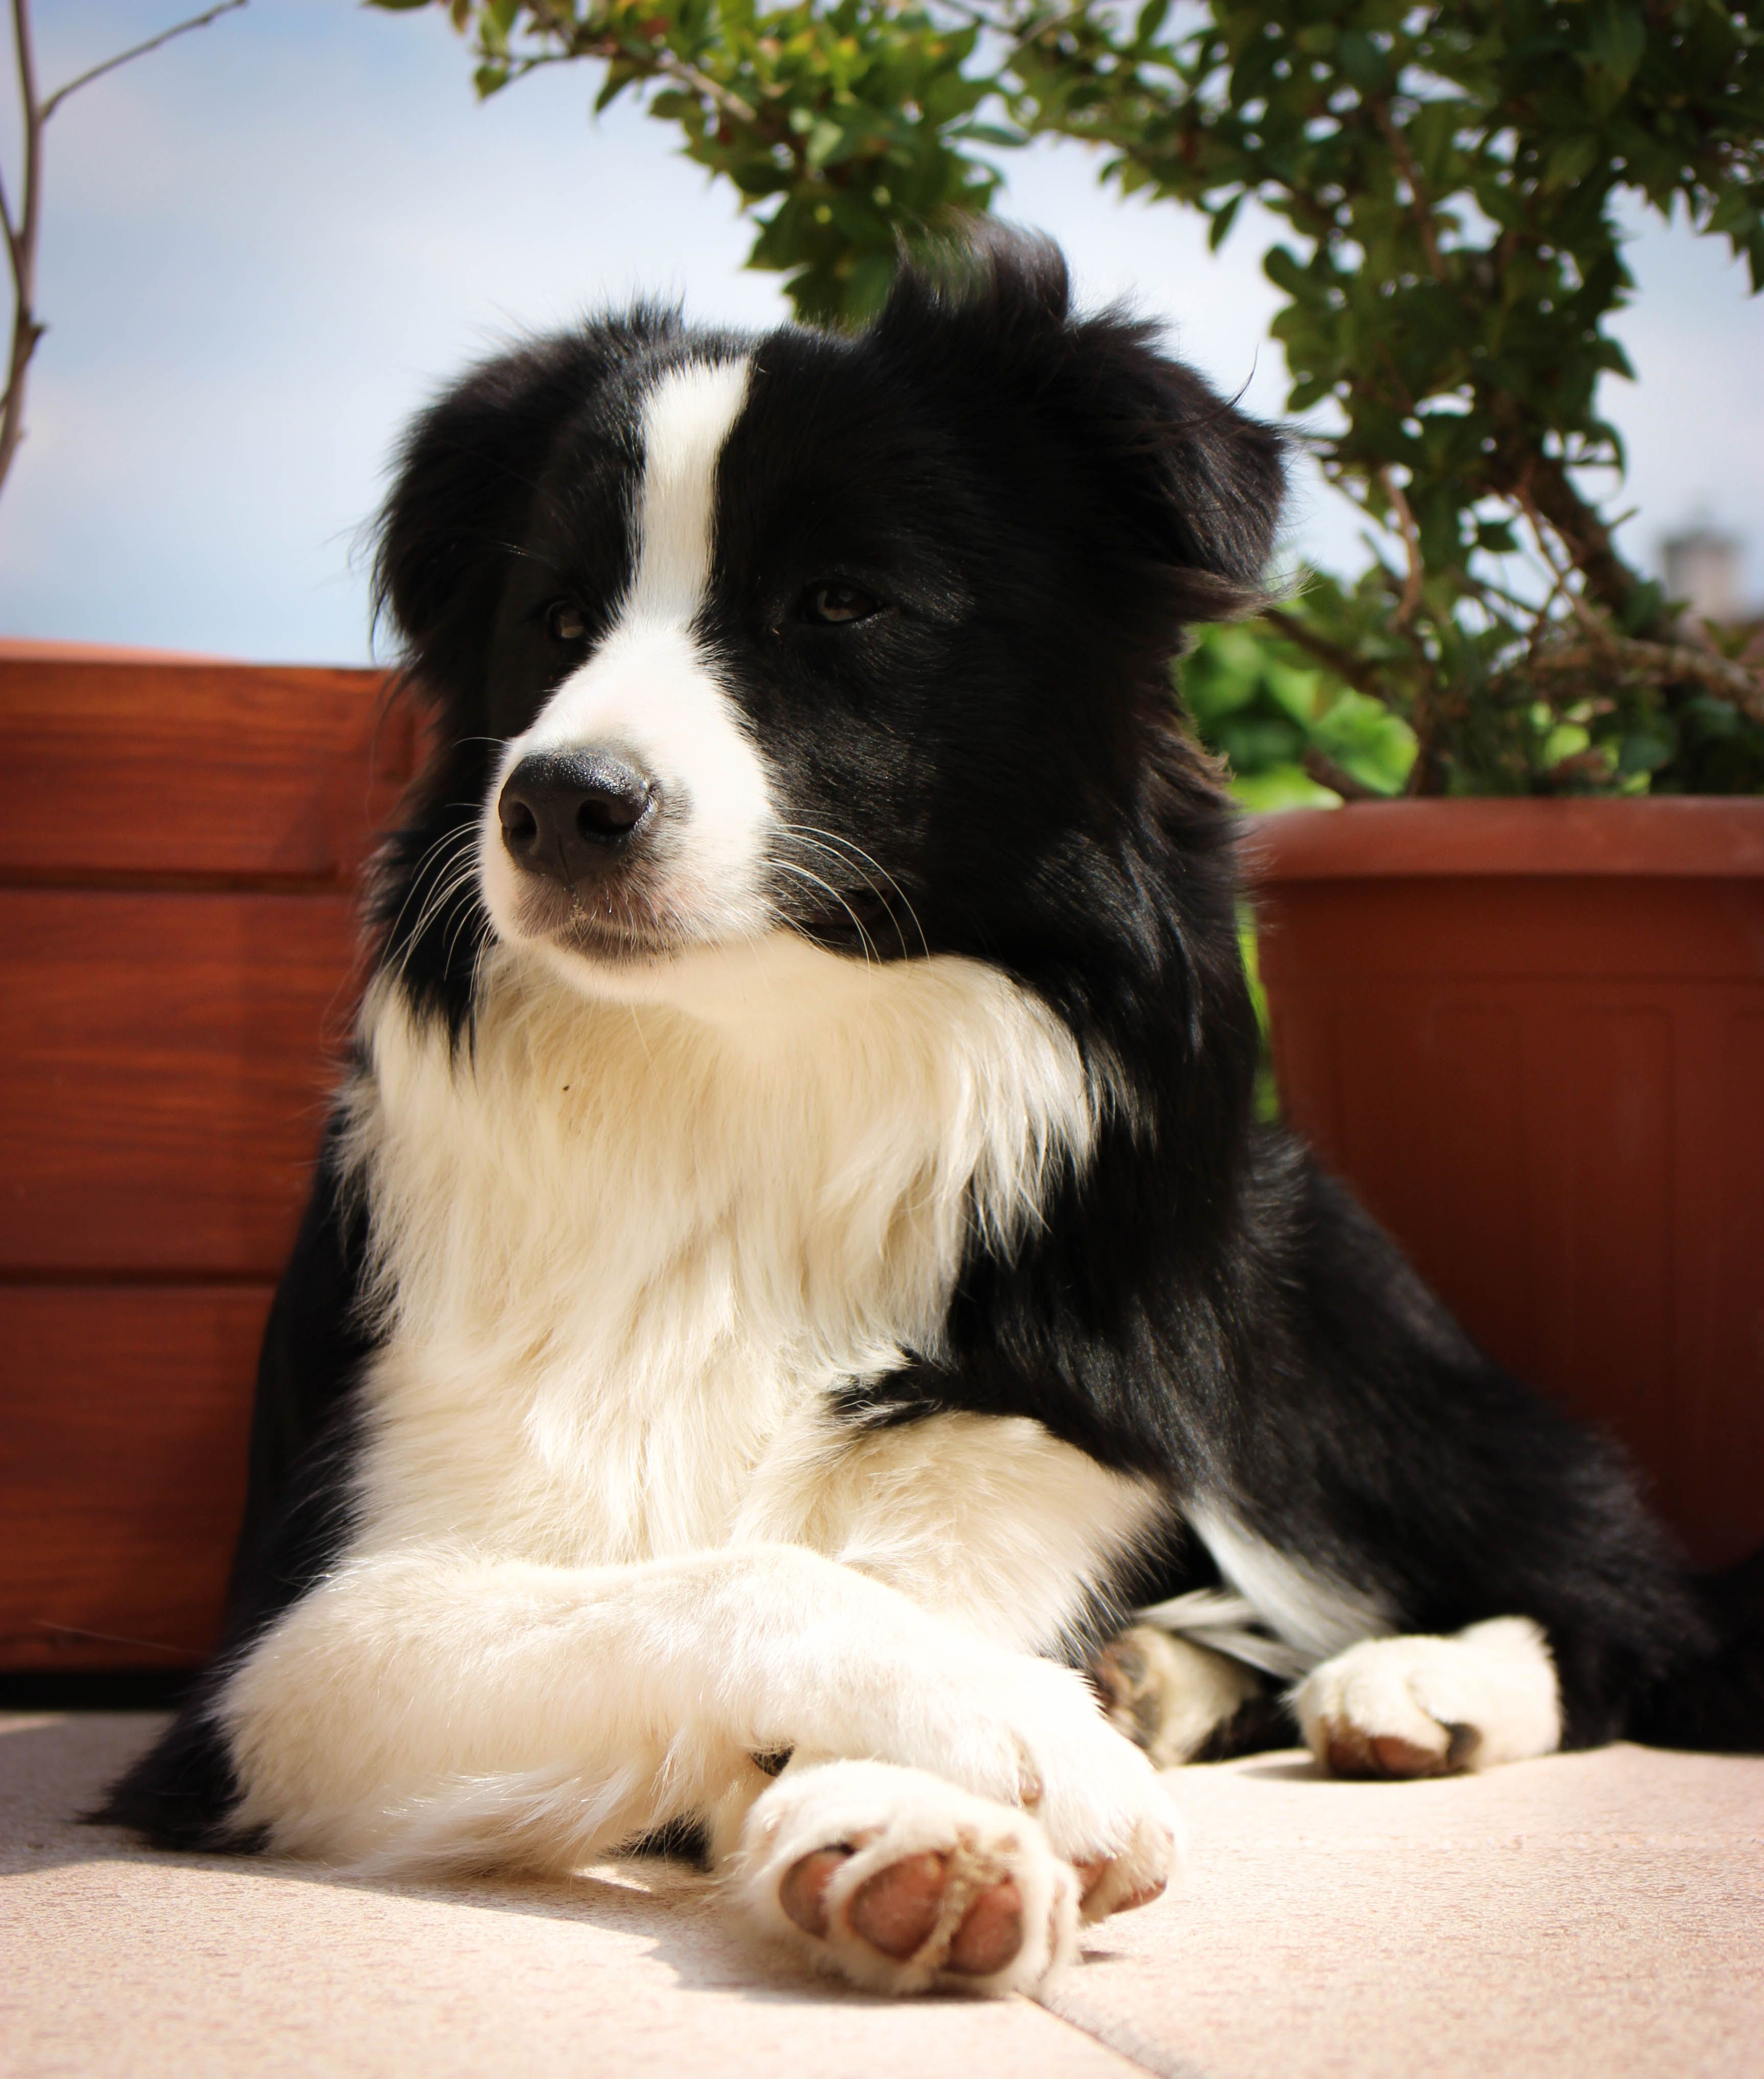 A Red Merle Border Collie Puppy With One Blue Eye And One Green Eye Puppies Maremma Sheepdog Puppy Border Collie